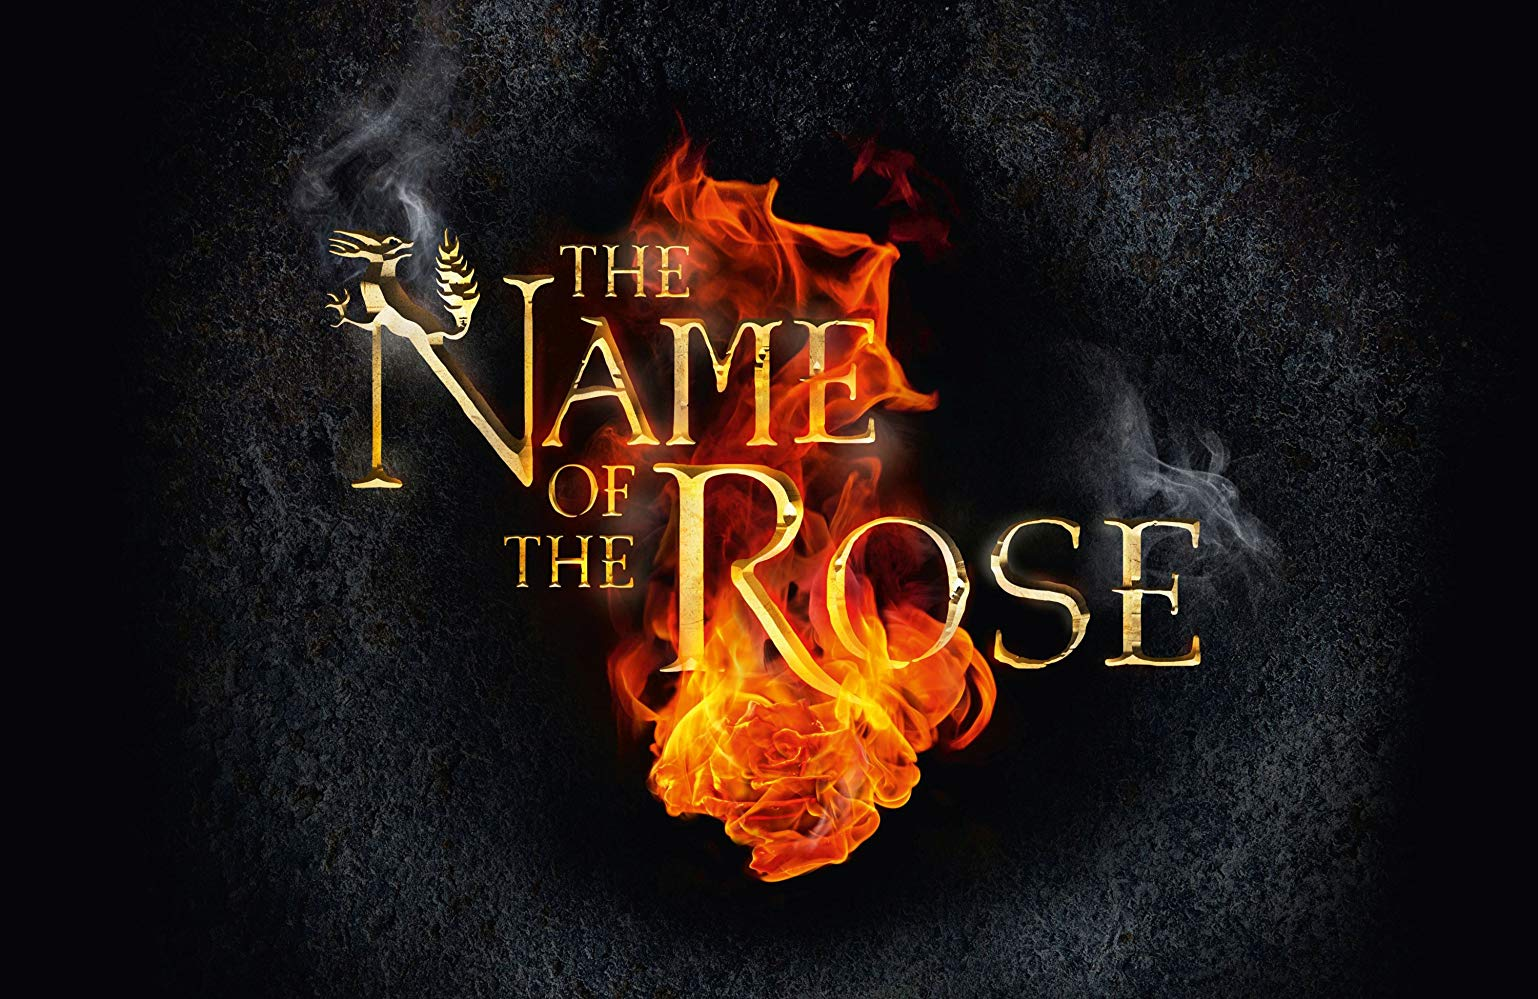 The Name Of The Rose 2019 S01 E01 720p HDTVRip 350MB Download